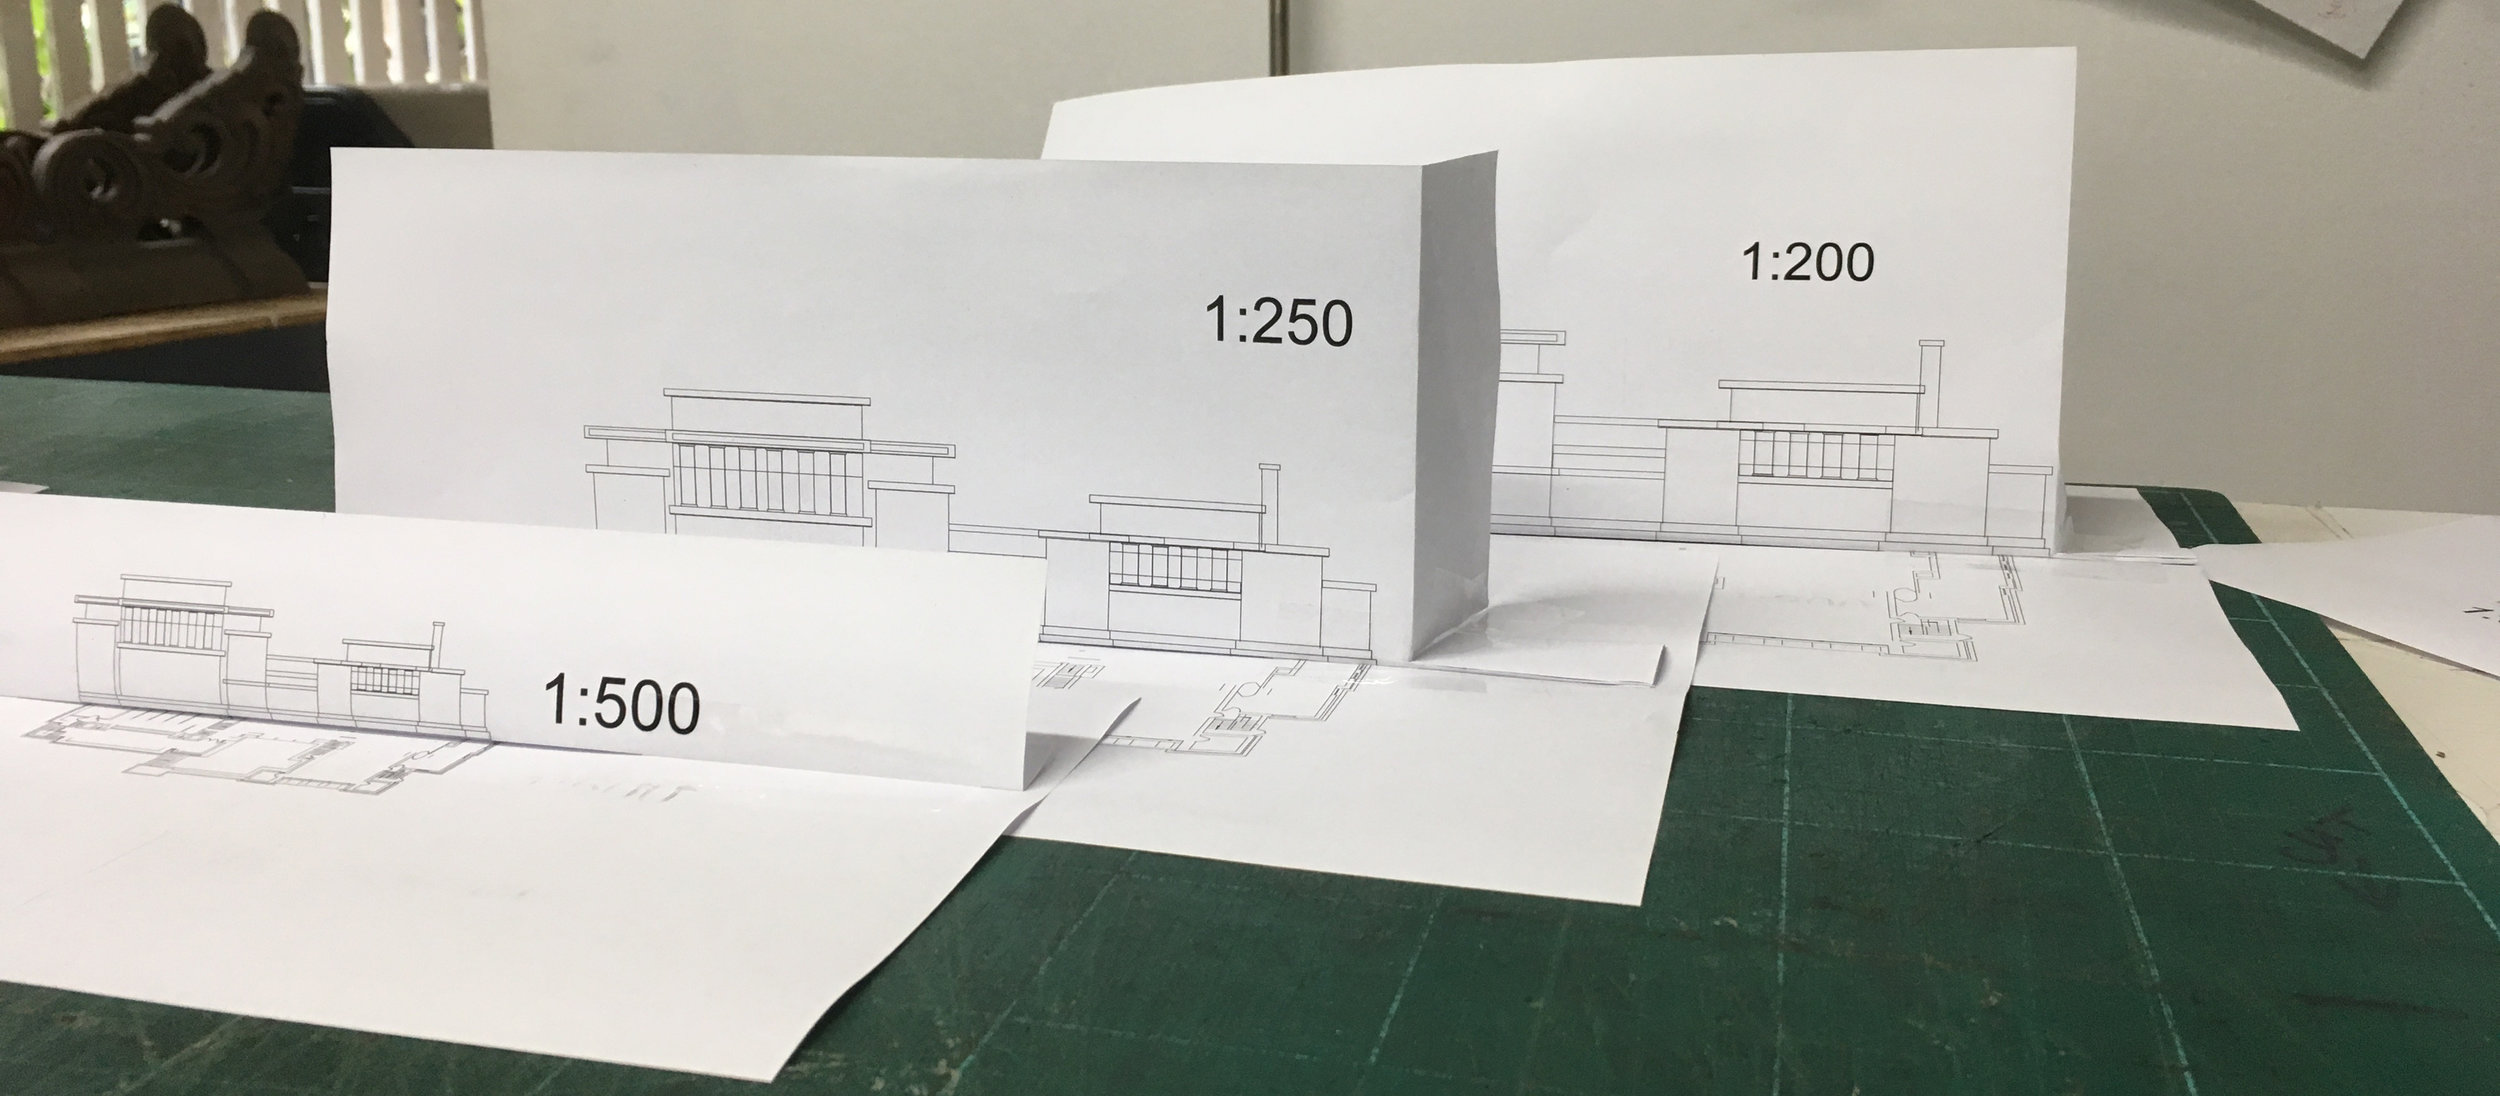 Unity Temple scale comparison